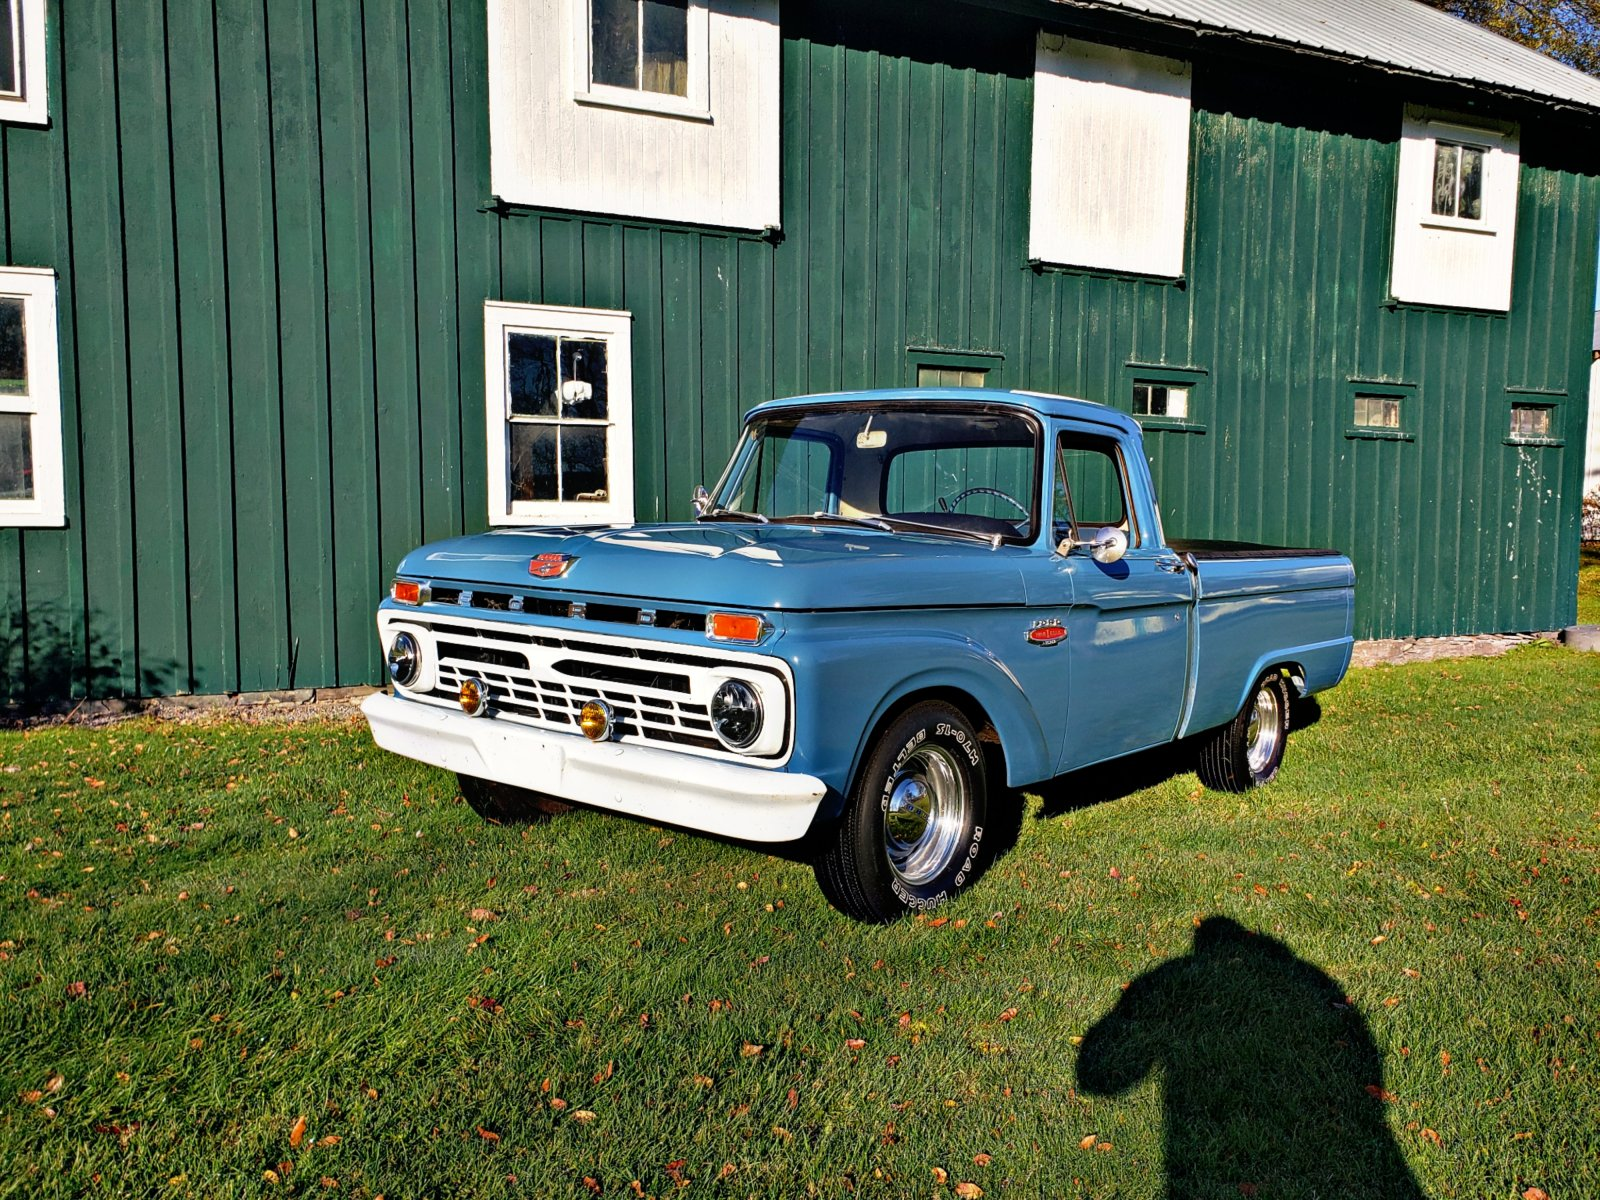 1966 Ford F100 Story About Truck Owner Chris F. 2.jpg